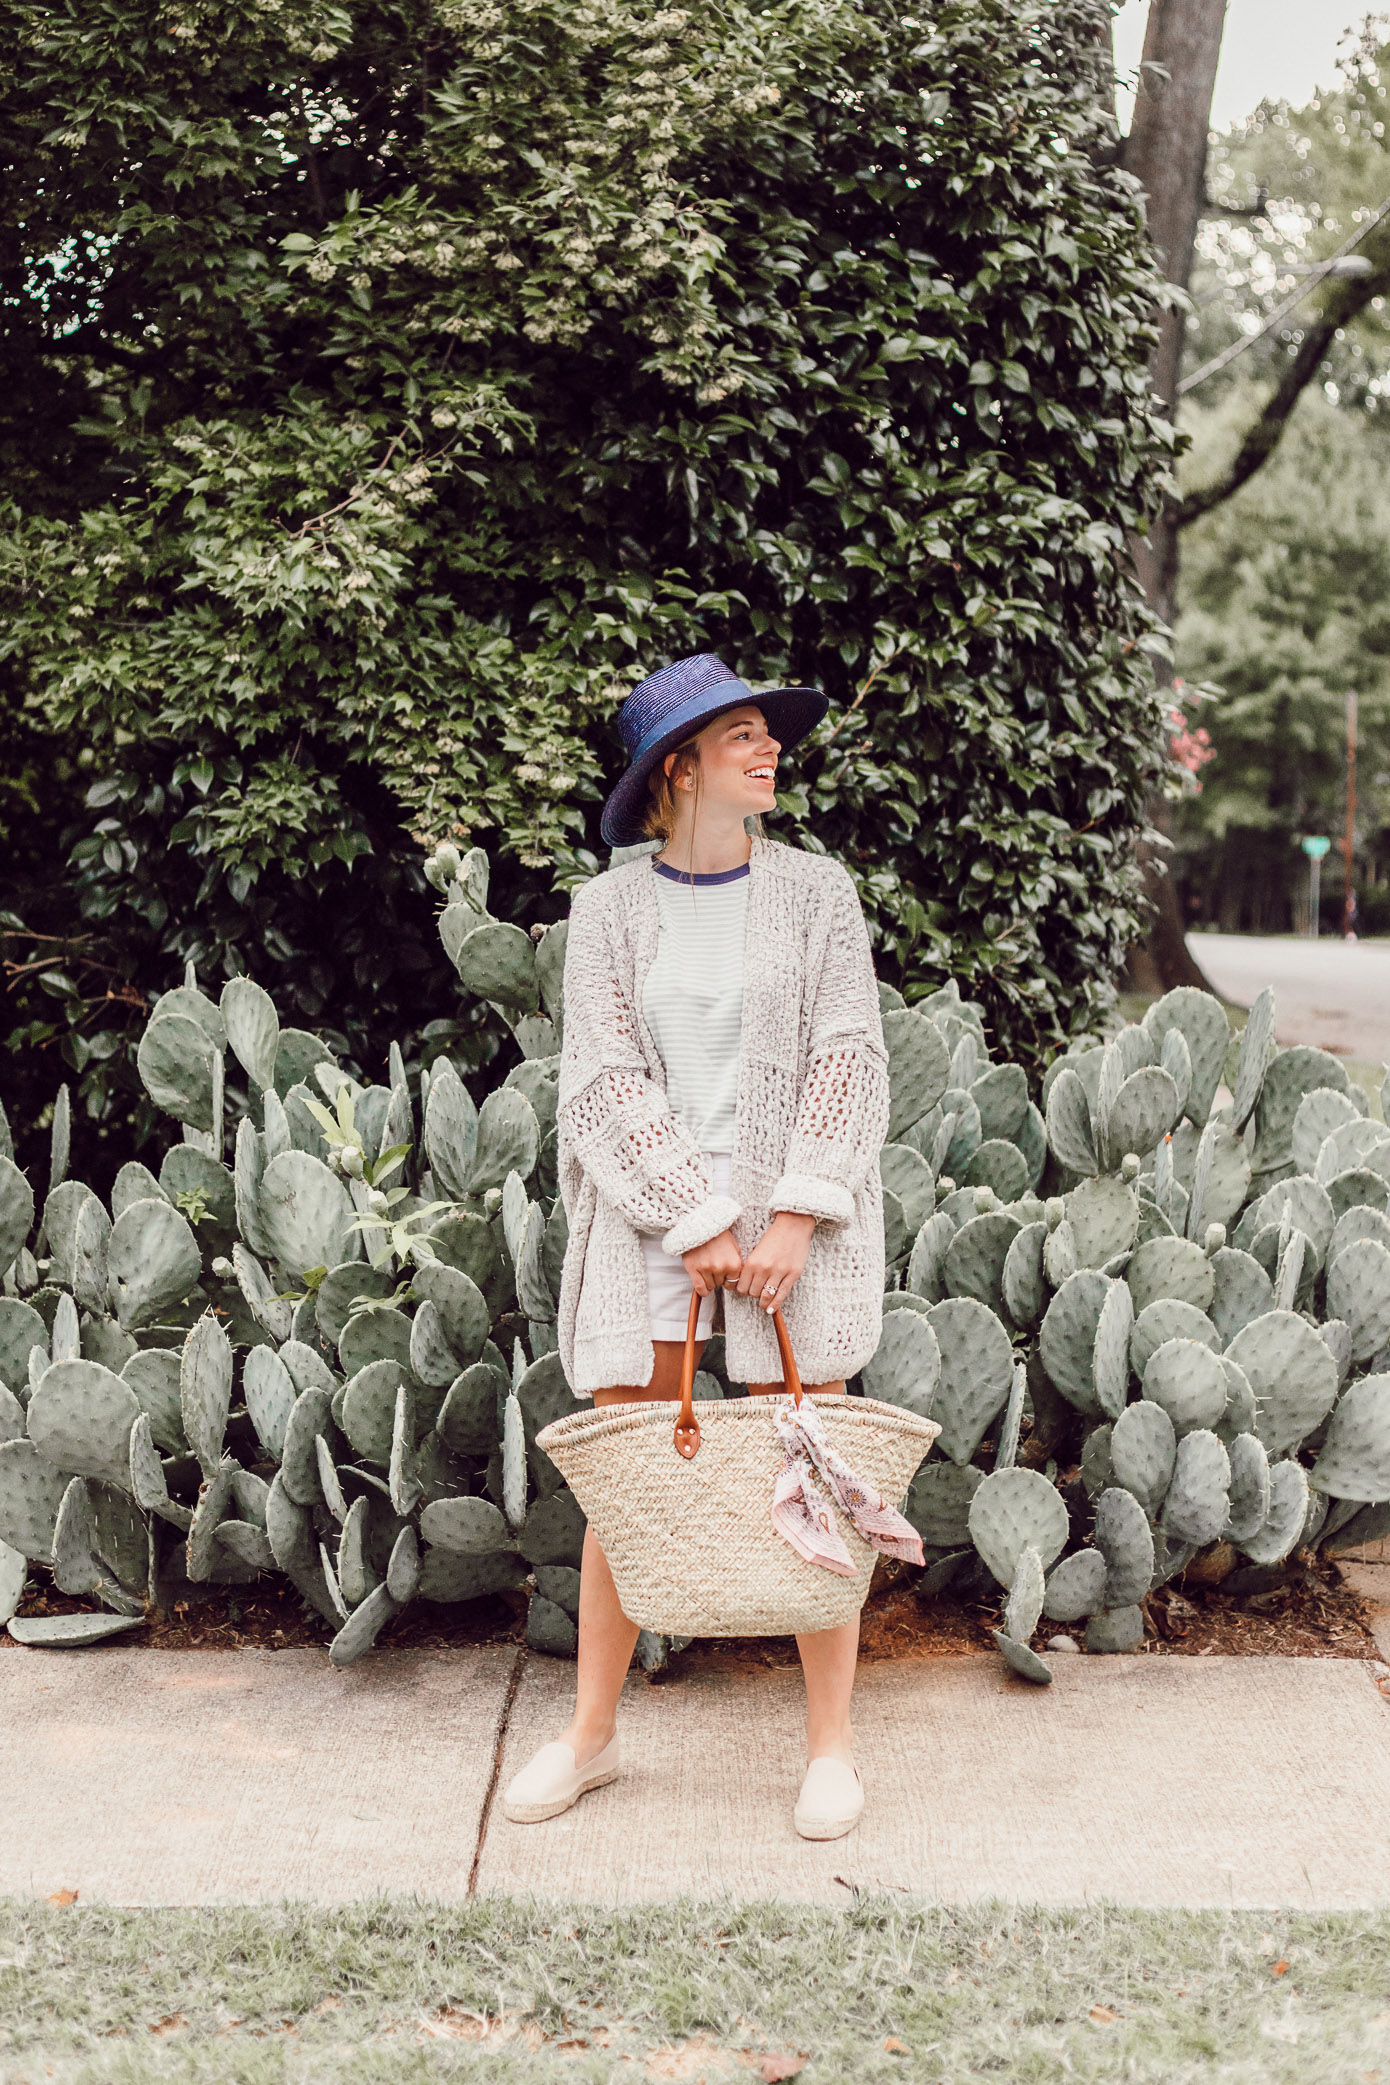 Navy Straw Hat, Free People Saturday Morning Cardigan, Green and White Striped Tee | Casual Late Summer Outfit Idea featured on Louella Reese